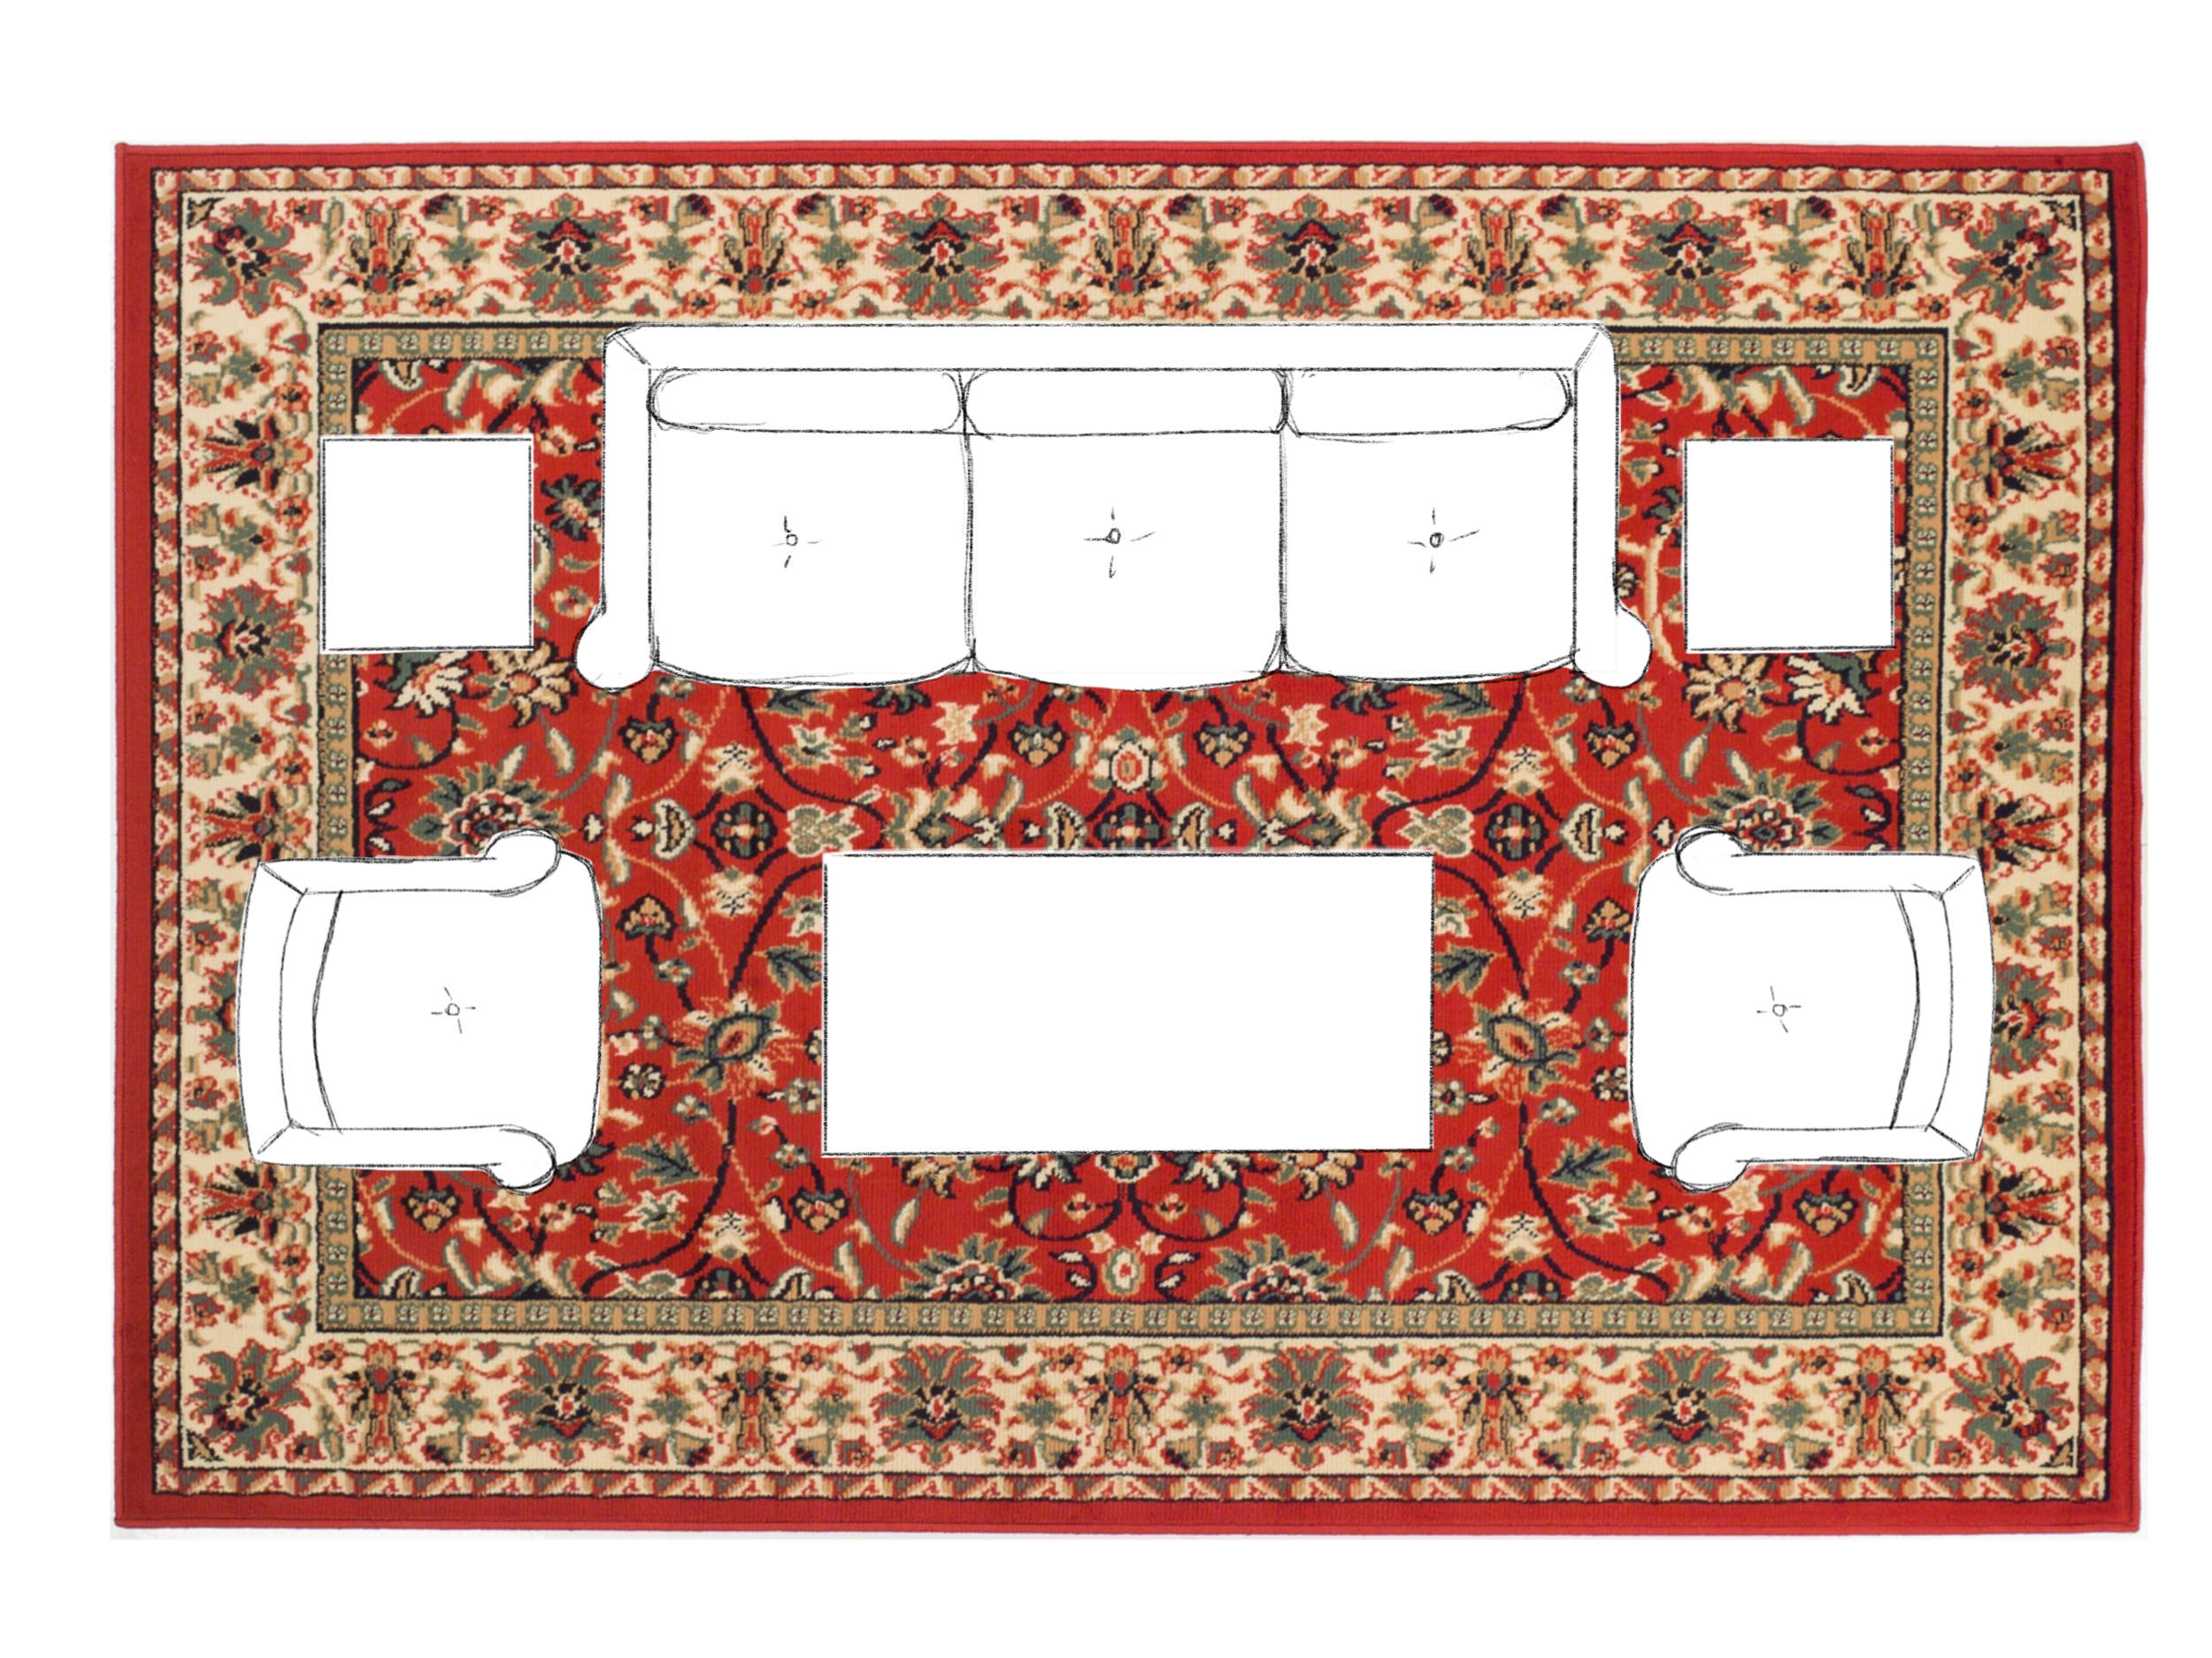 How to Choose the Right Size Area Rug - All Legs On Living Room Layout. Asha-Maia Design | Interiors + Events, Alexandria, VA 22302